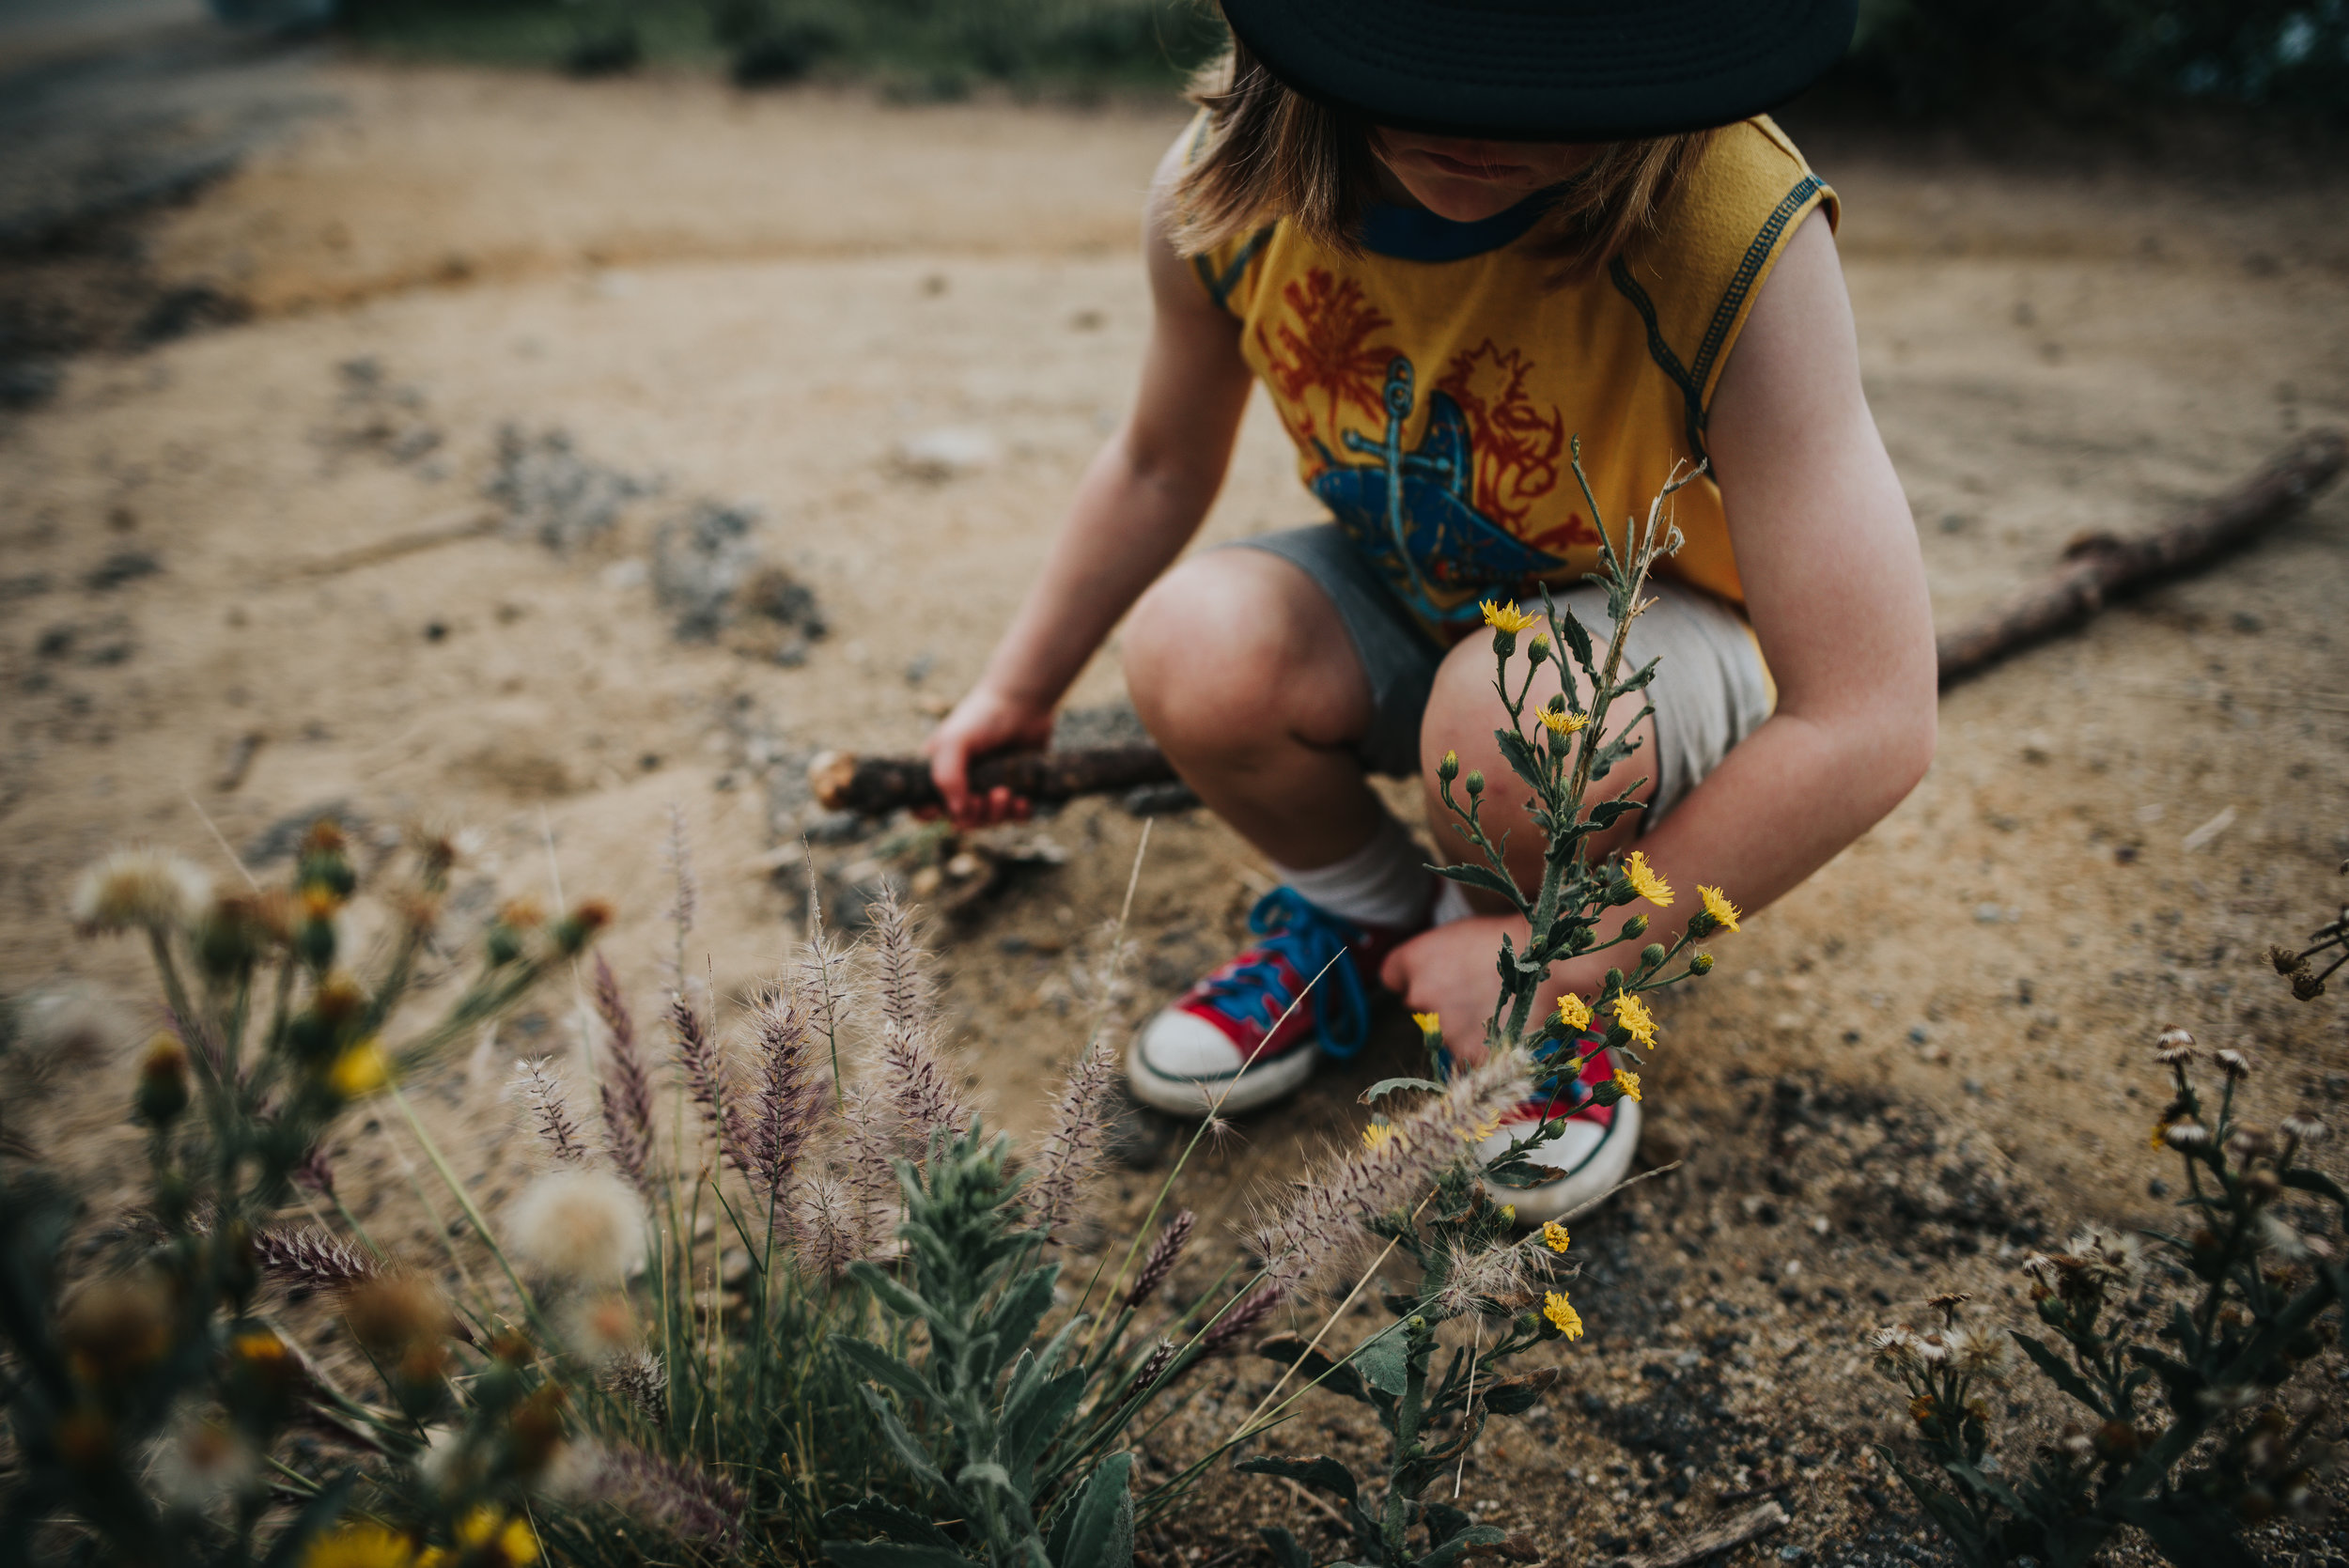 Little boy explores wild flowers during mountain hike in Hollywood, California.